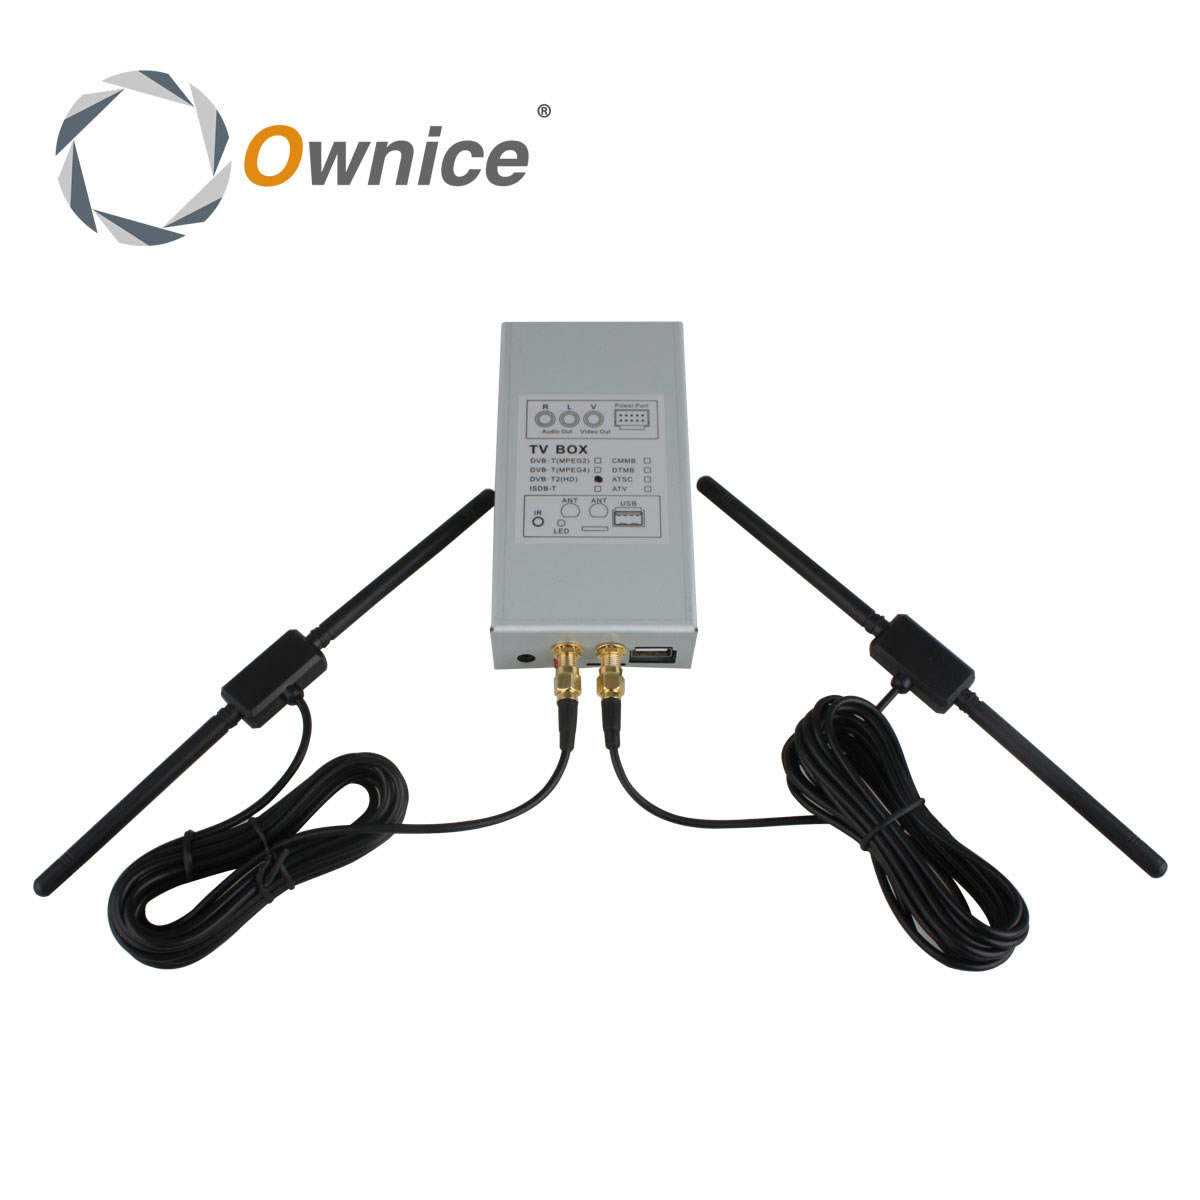 Special DVB-T MPEG4  Digital TV Box For Ownice Car DVD.The Item Just Fit for our Car DVD dvb t2 car 180 200km h digital car tv tuner 4 antenna 4 mobility chip dvb t2 car tv receiver box dvbt2